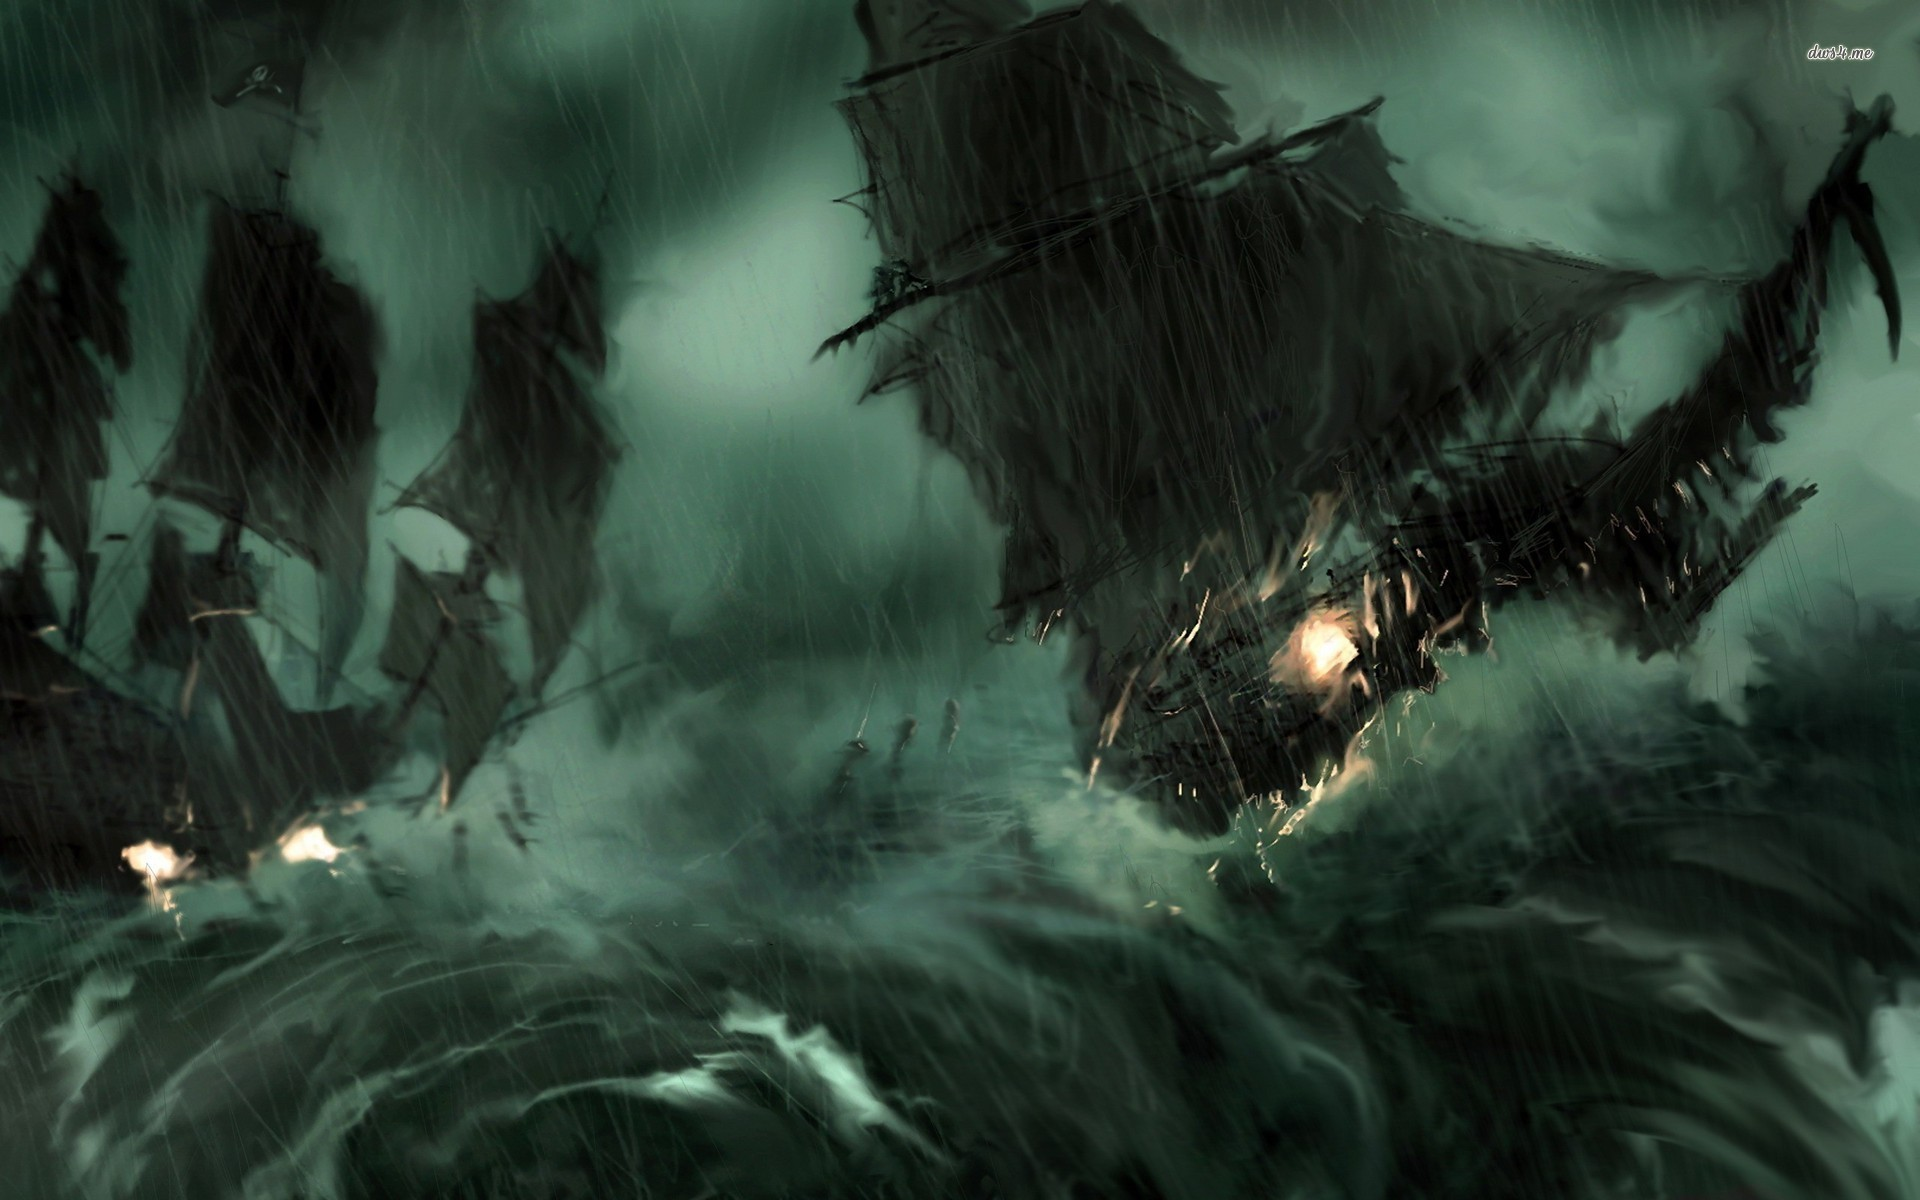 … Pirate ship during the storm